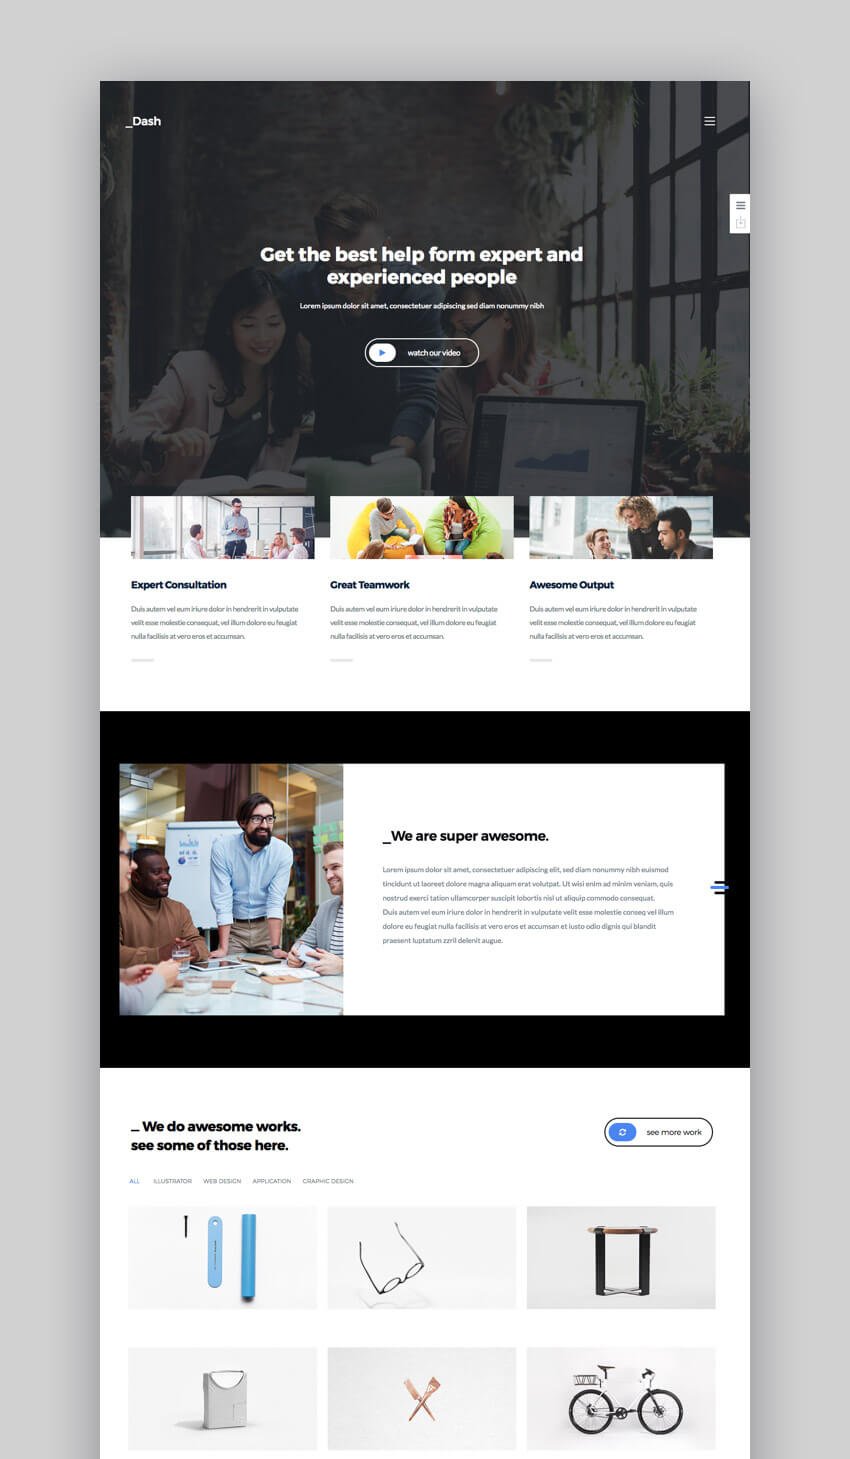 Dash - Professional WordPress Theme for Small Business Sites